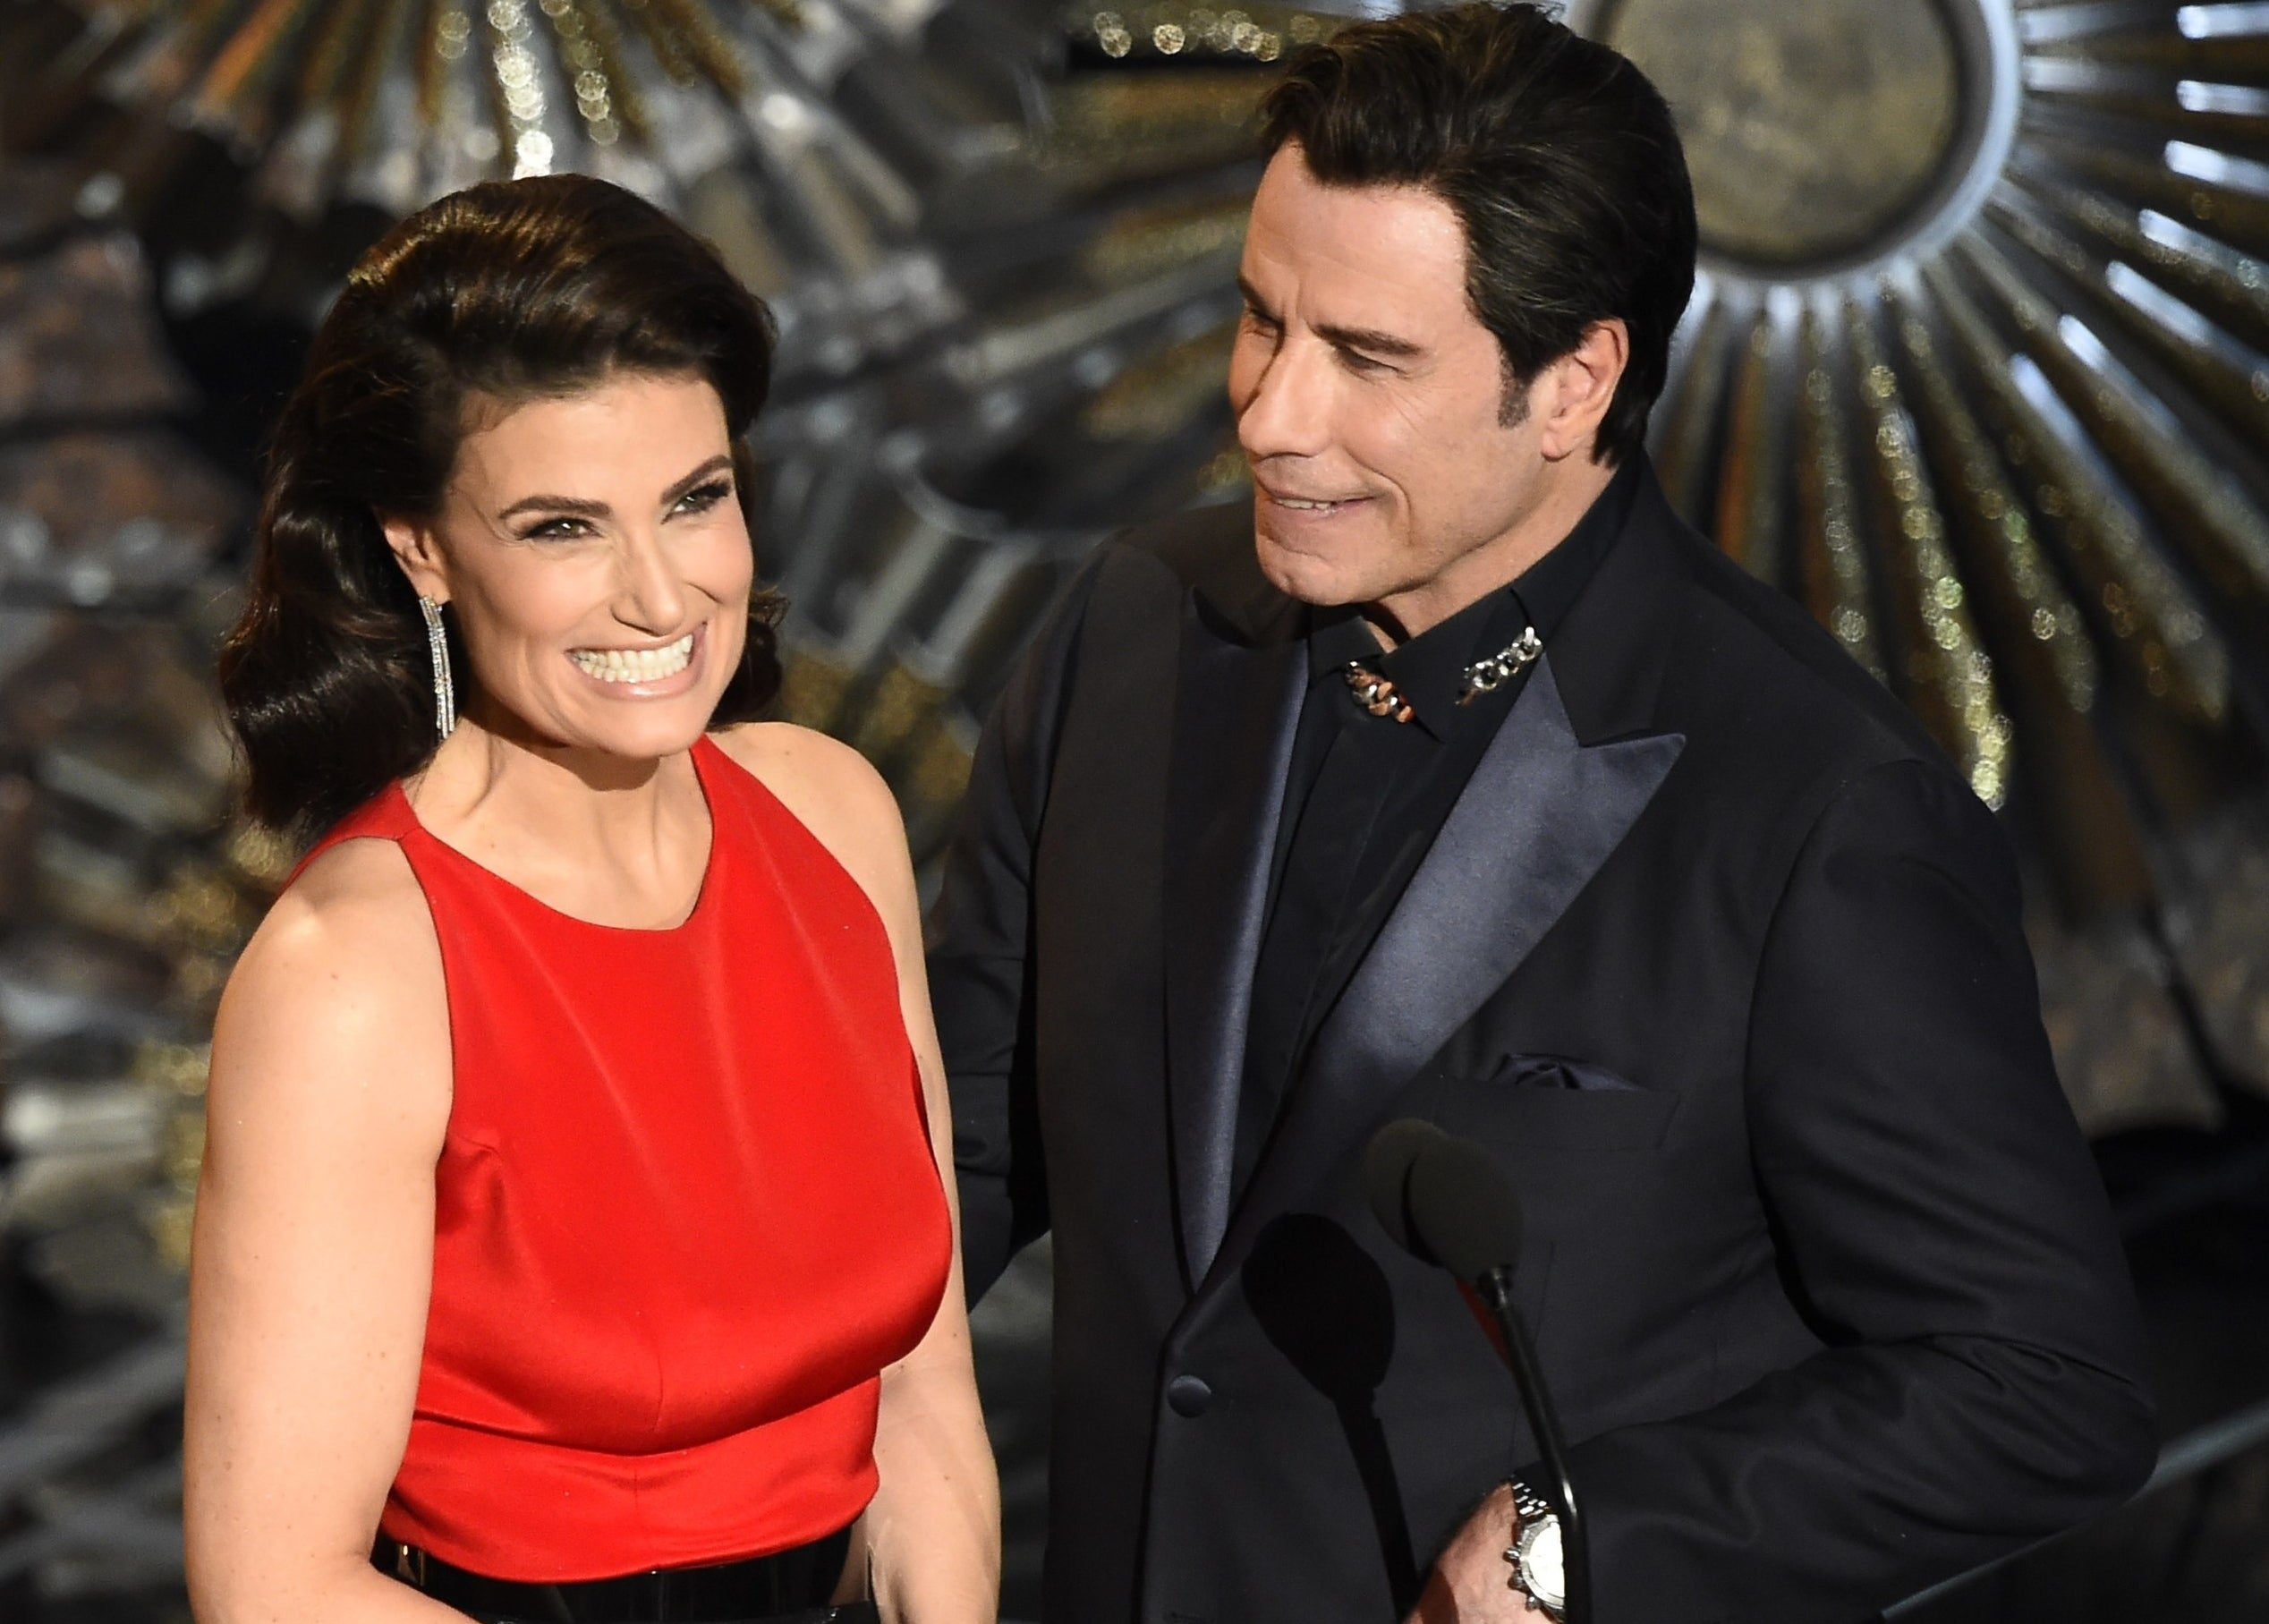 Idina and John smile while sharing the stage at a later time